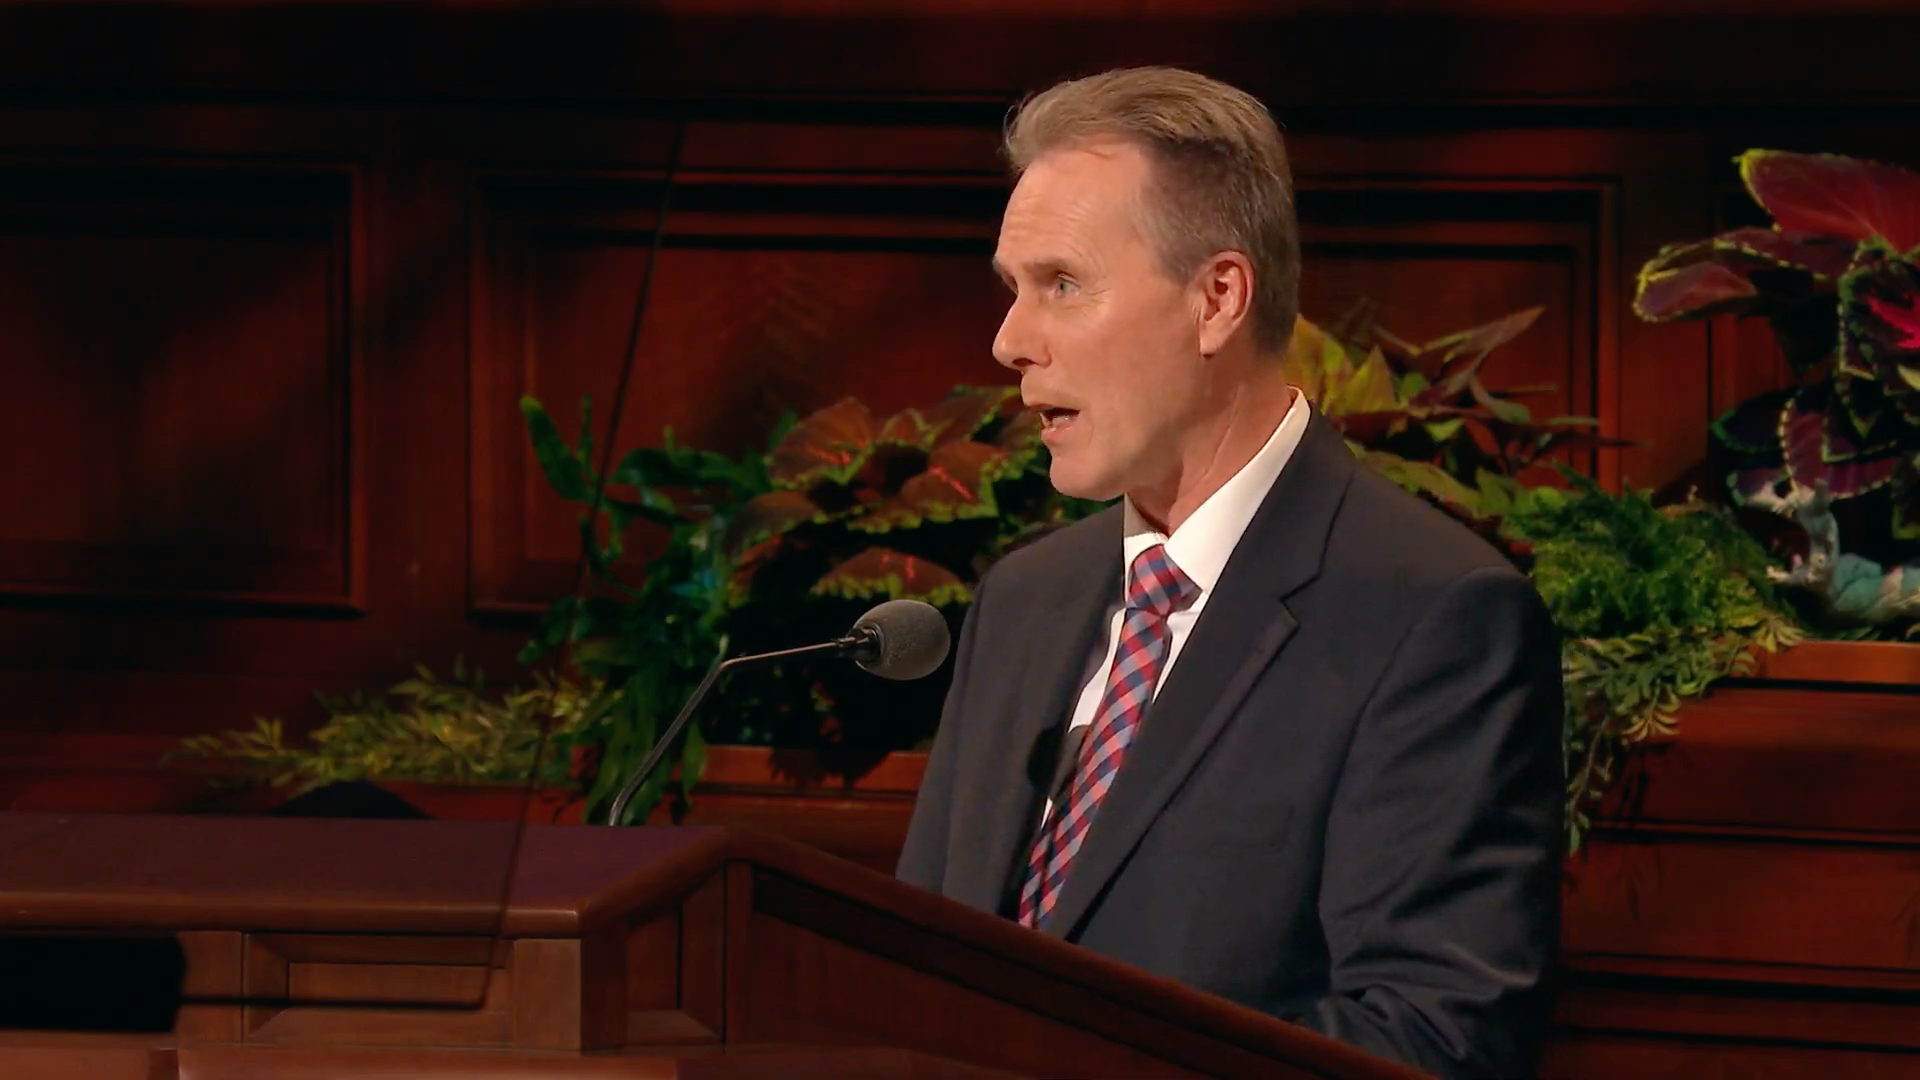 Elder Hans T. Boom, a General Authority Seventy, speaks during the Sunday afternoon session in the 189th Semiannual General Conference of the Church on Sunday, Oct. 6, 2019.